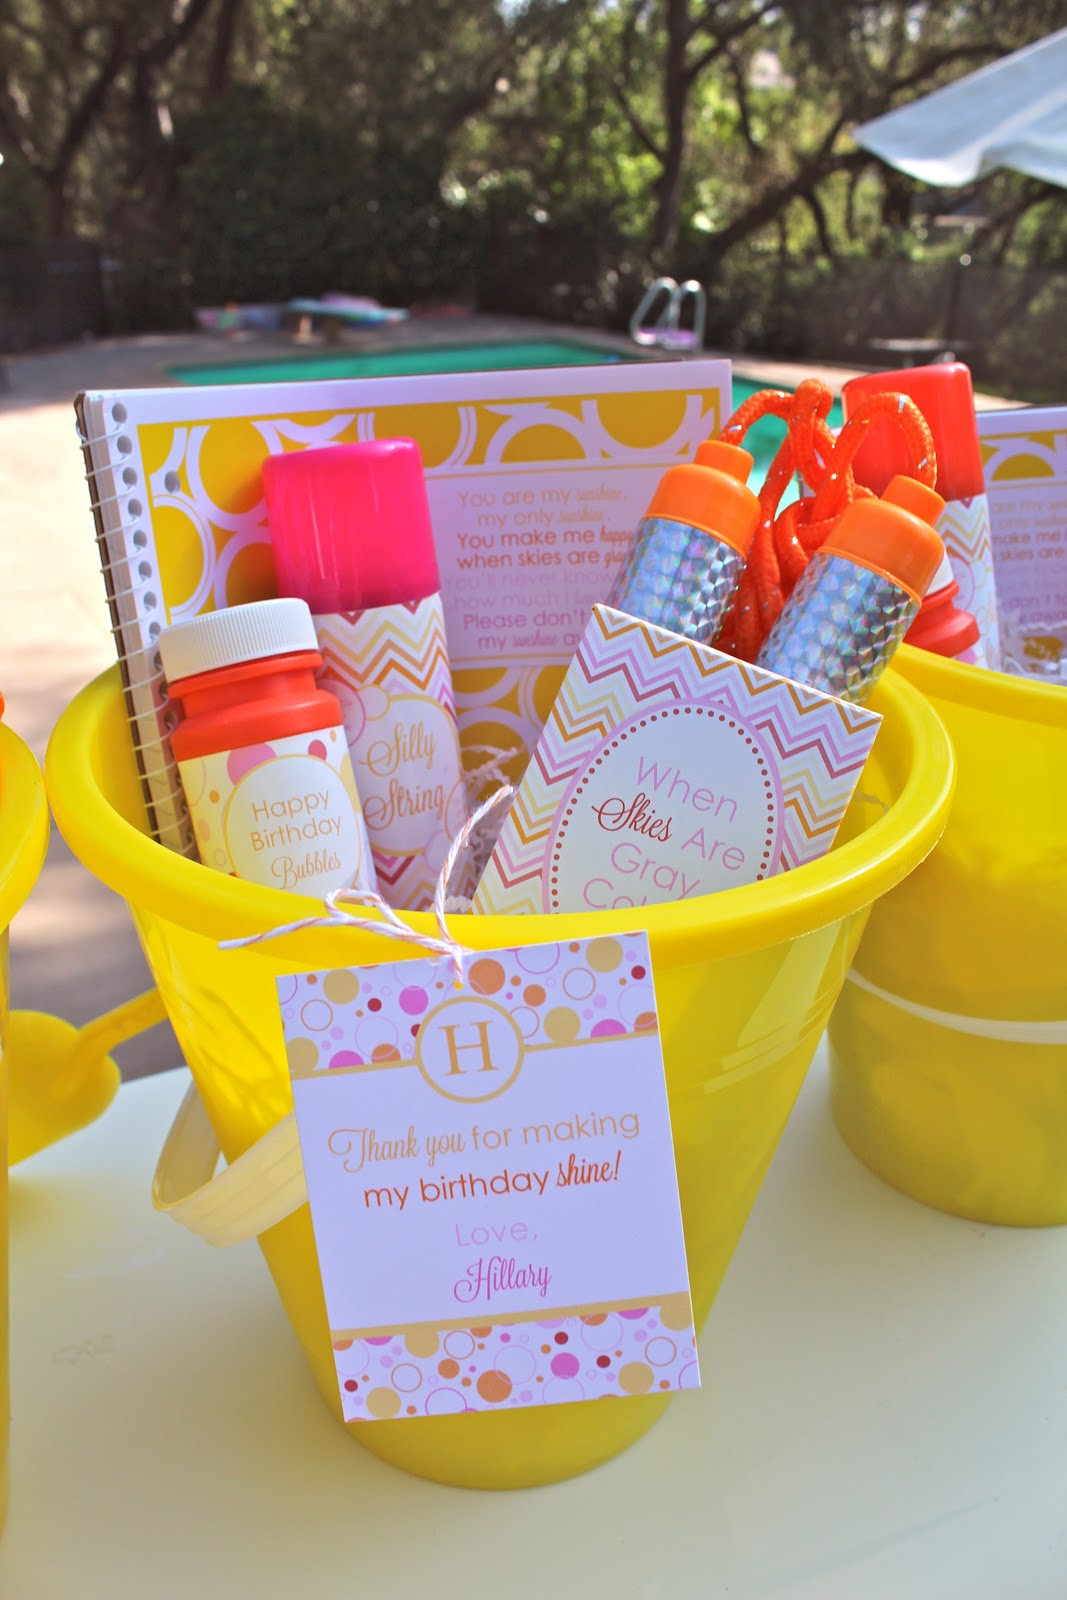 grey bucket chair desk dimensions bloom designs: you are my sunshine part 2